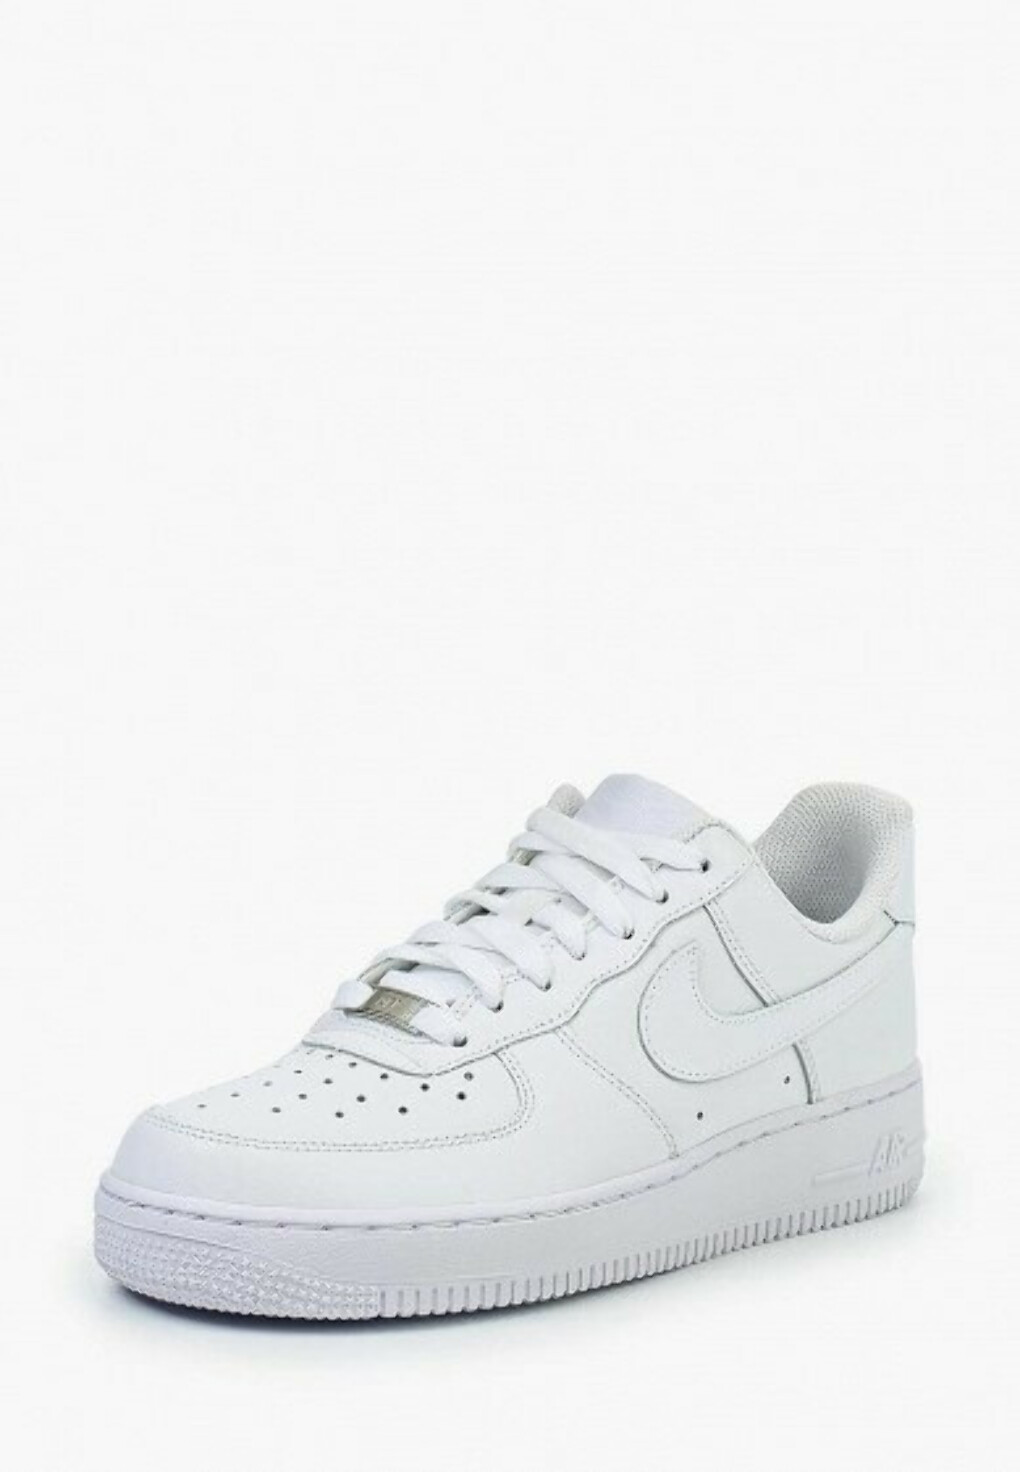 Кроссовки Nike Women's Nike Air Force 1 '07 Shoe  за 6 990 руб. в интернет-магазине Lamoda.ru